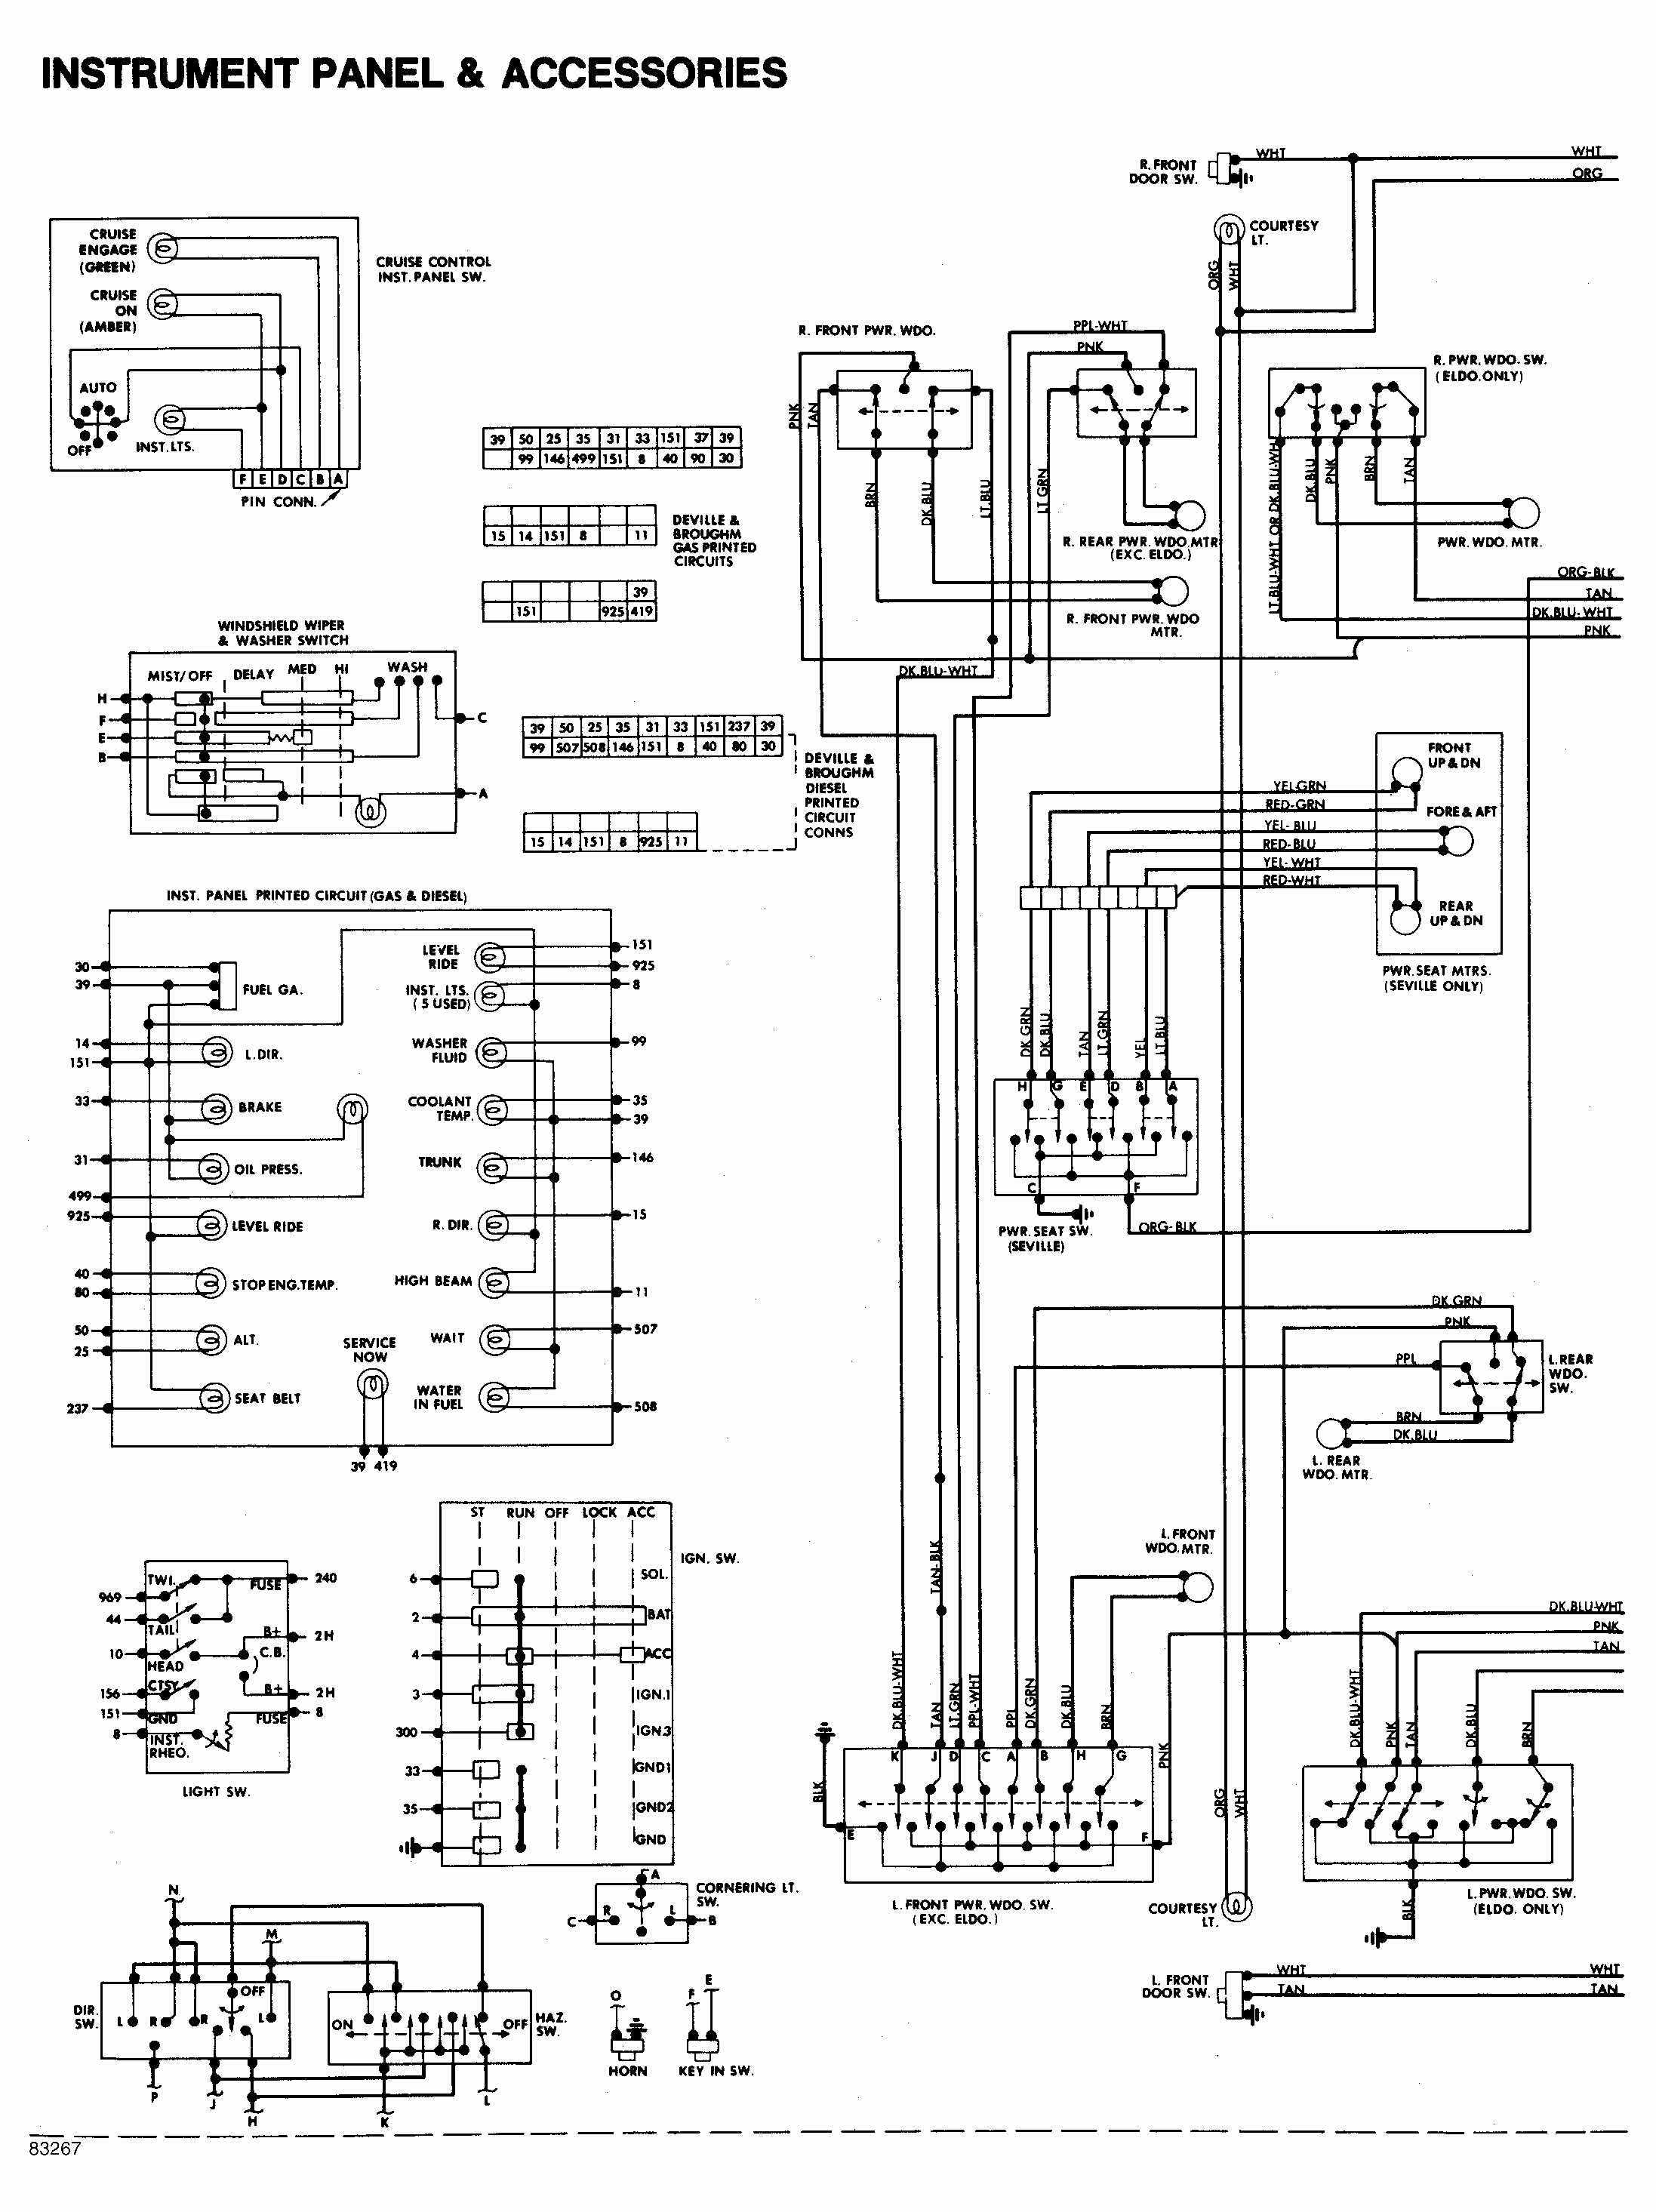 93 Cadillac Deville Wiring Diagram - Box Wiring Diagram •box wiring diagram